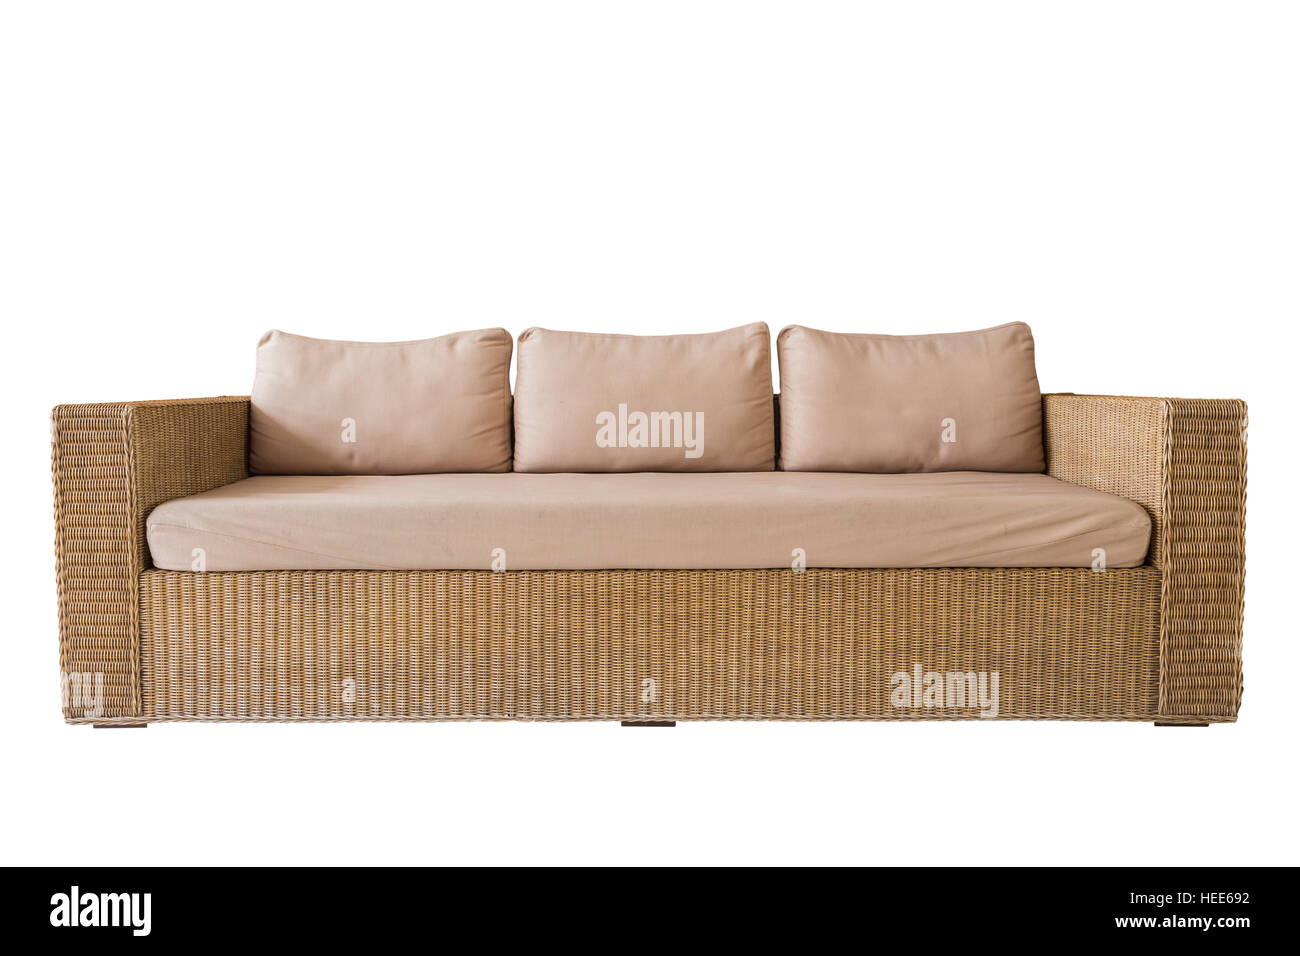 Rattan Sofa With Grey Cushions Isolated On White Background Saved Stock Photo Alamy